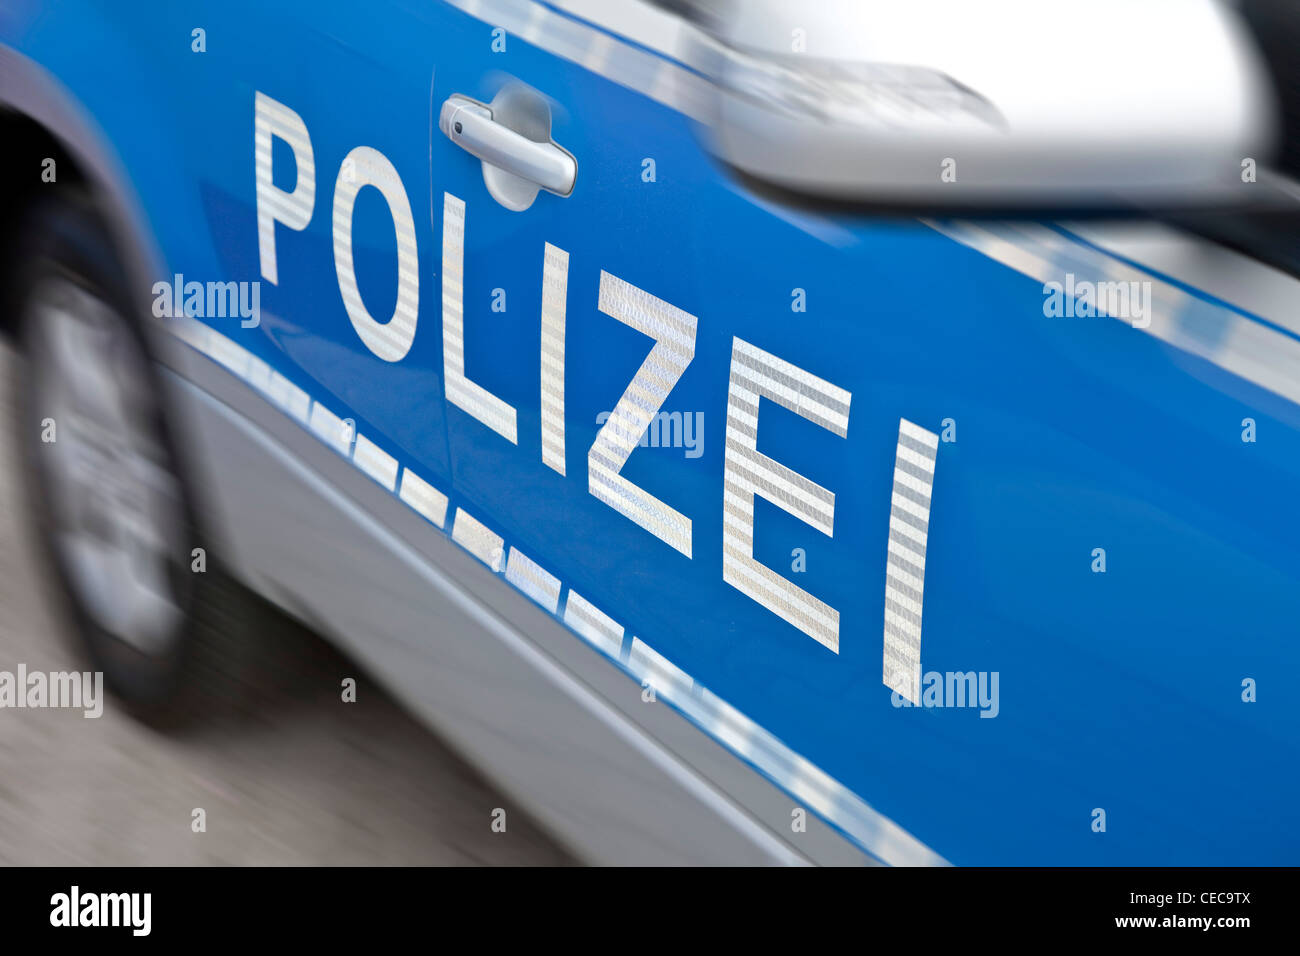 police car in germany - german police car - Stock Image